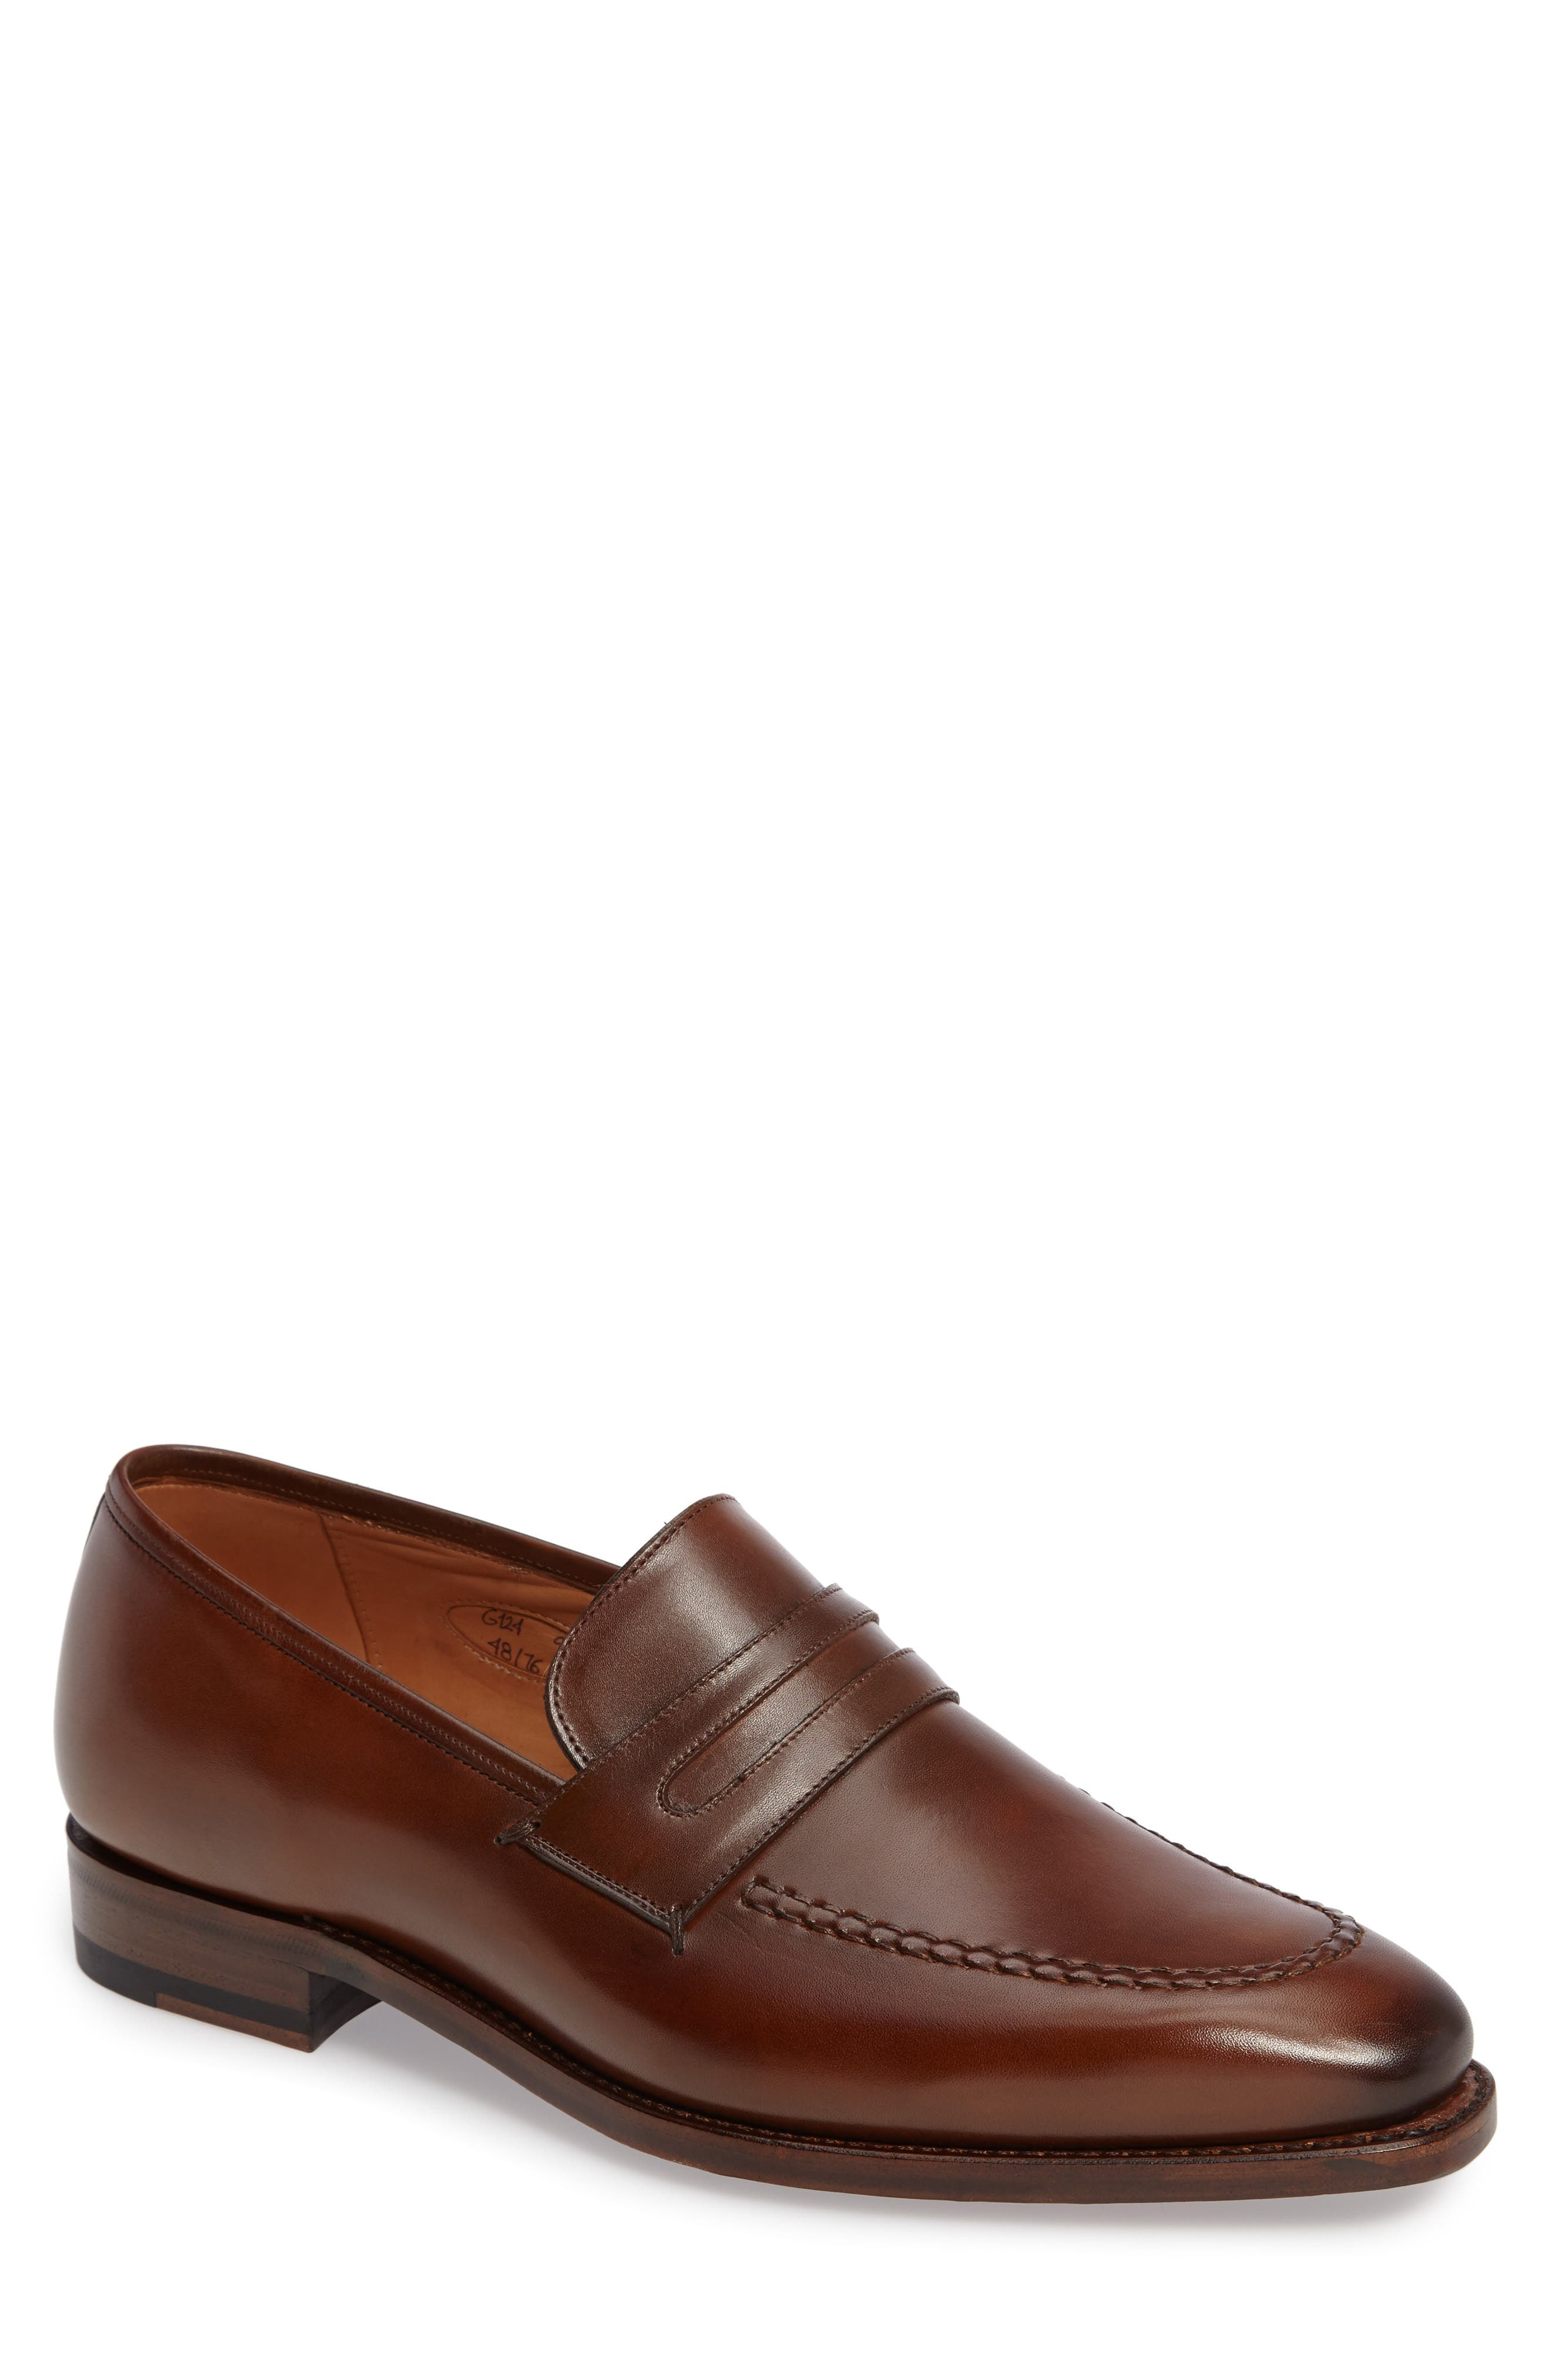 by Mezlan G124 Apron Toe Loafer,                             Main thumbnail 1, color,                             COGNAC